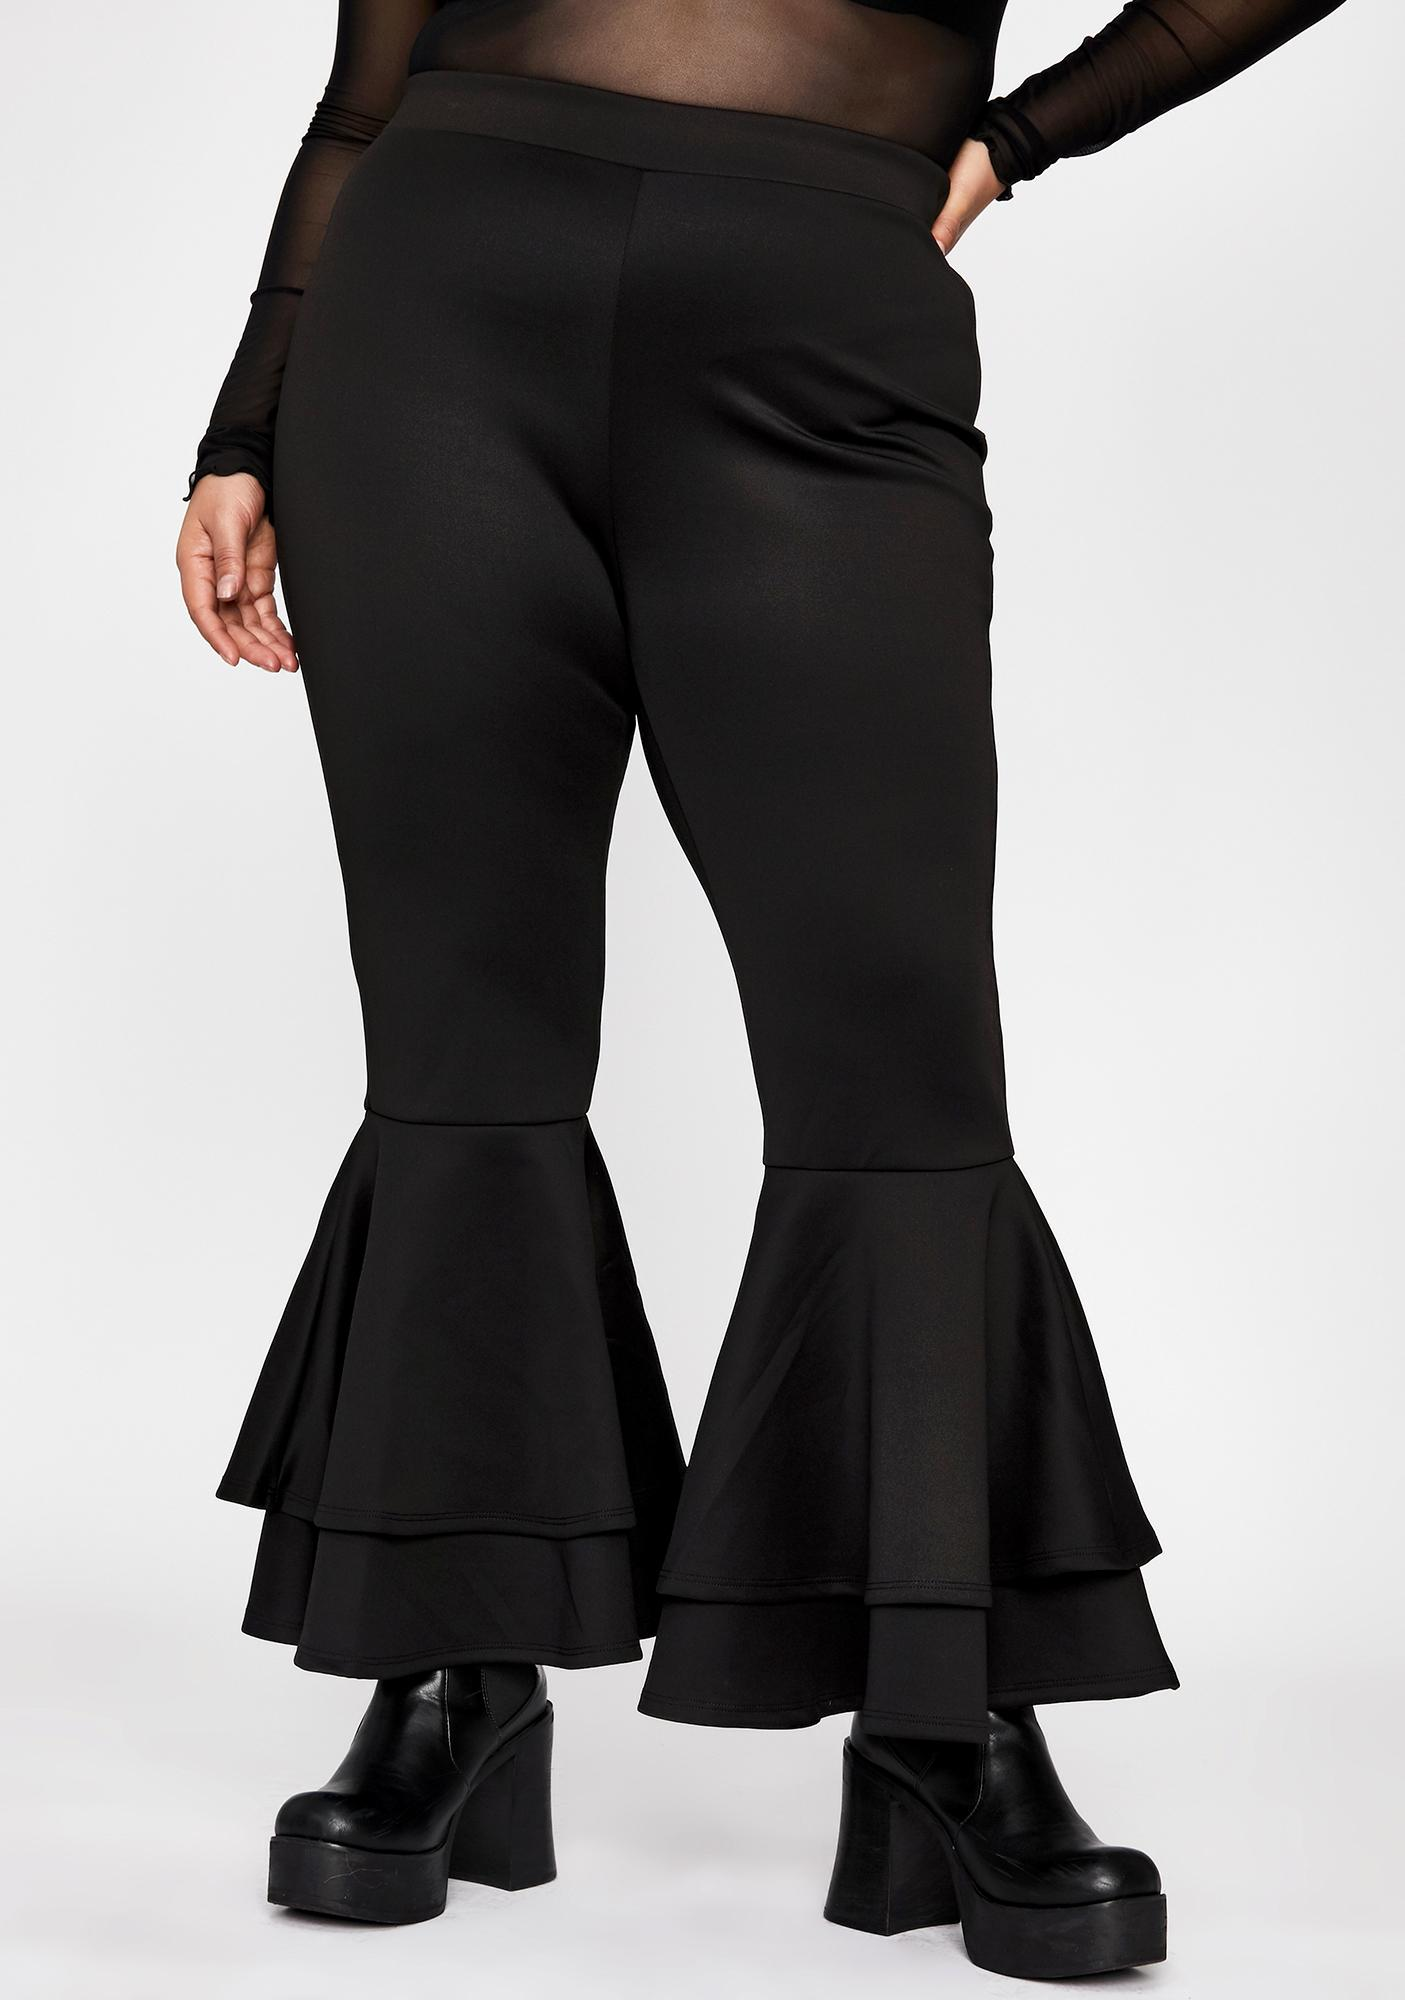 Fearless Finesse Bell Bottom Flares